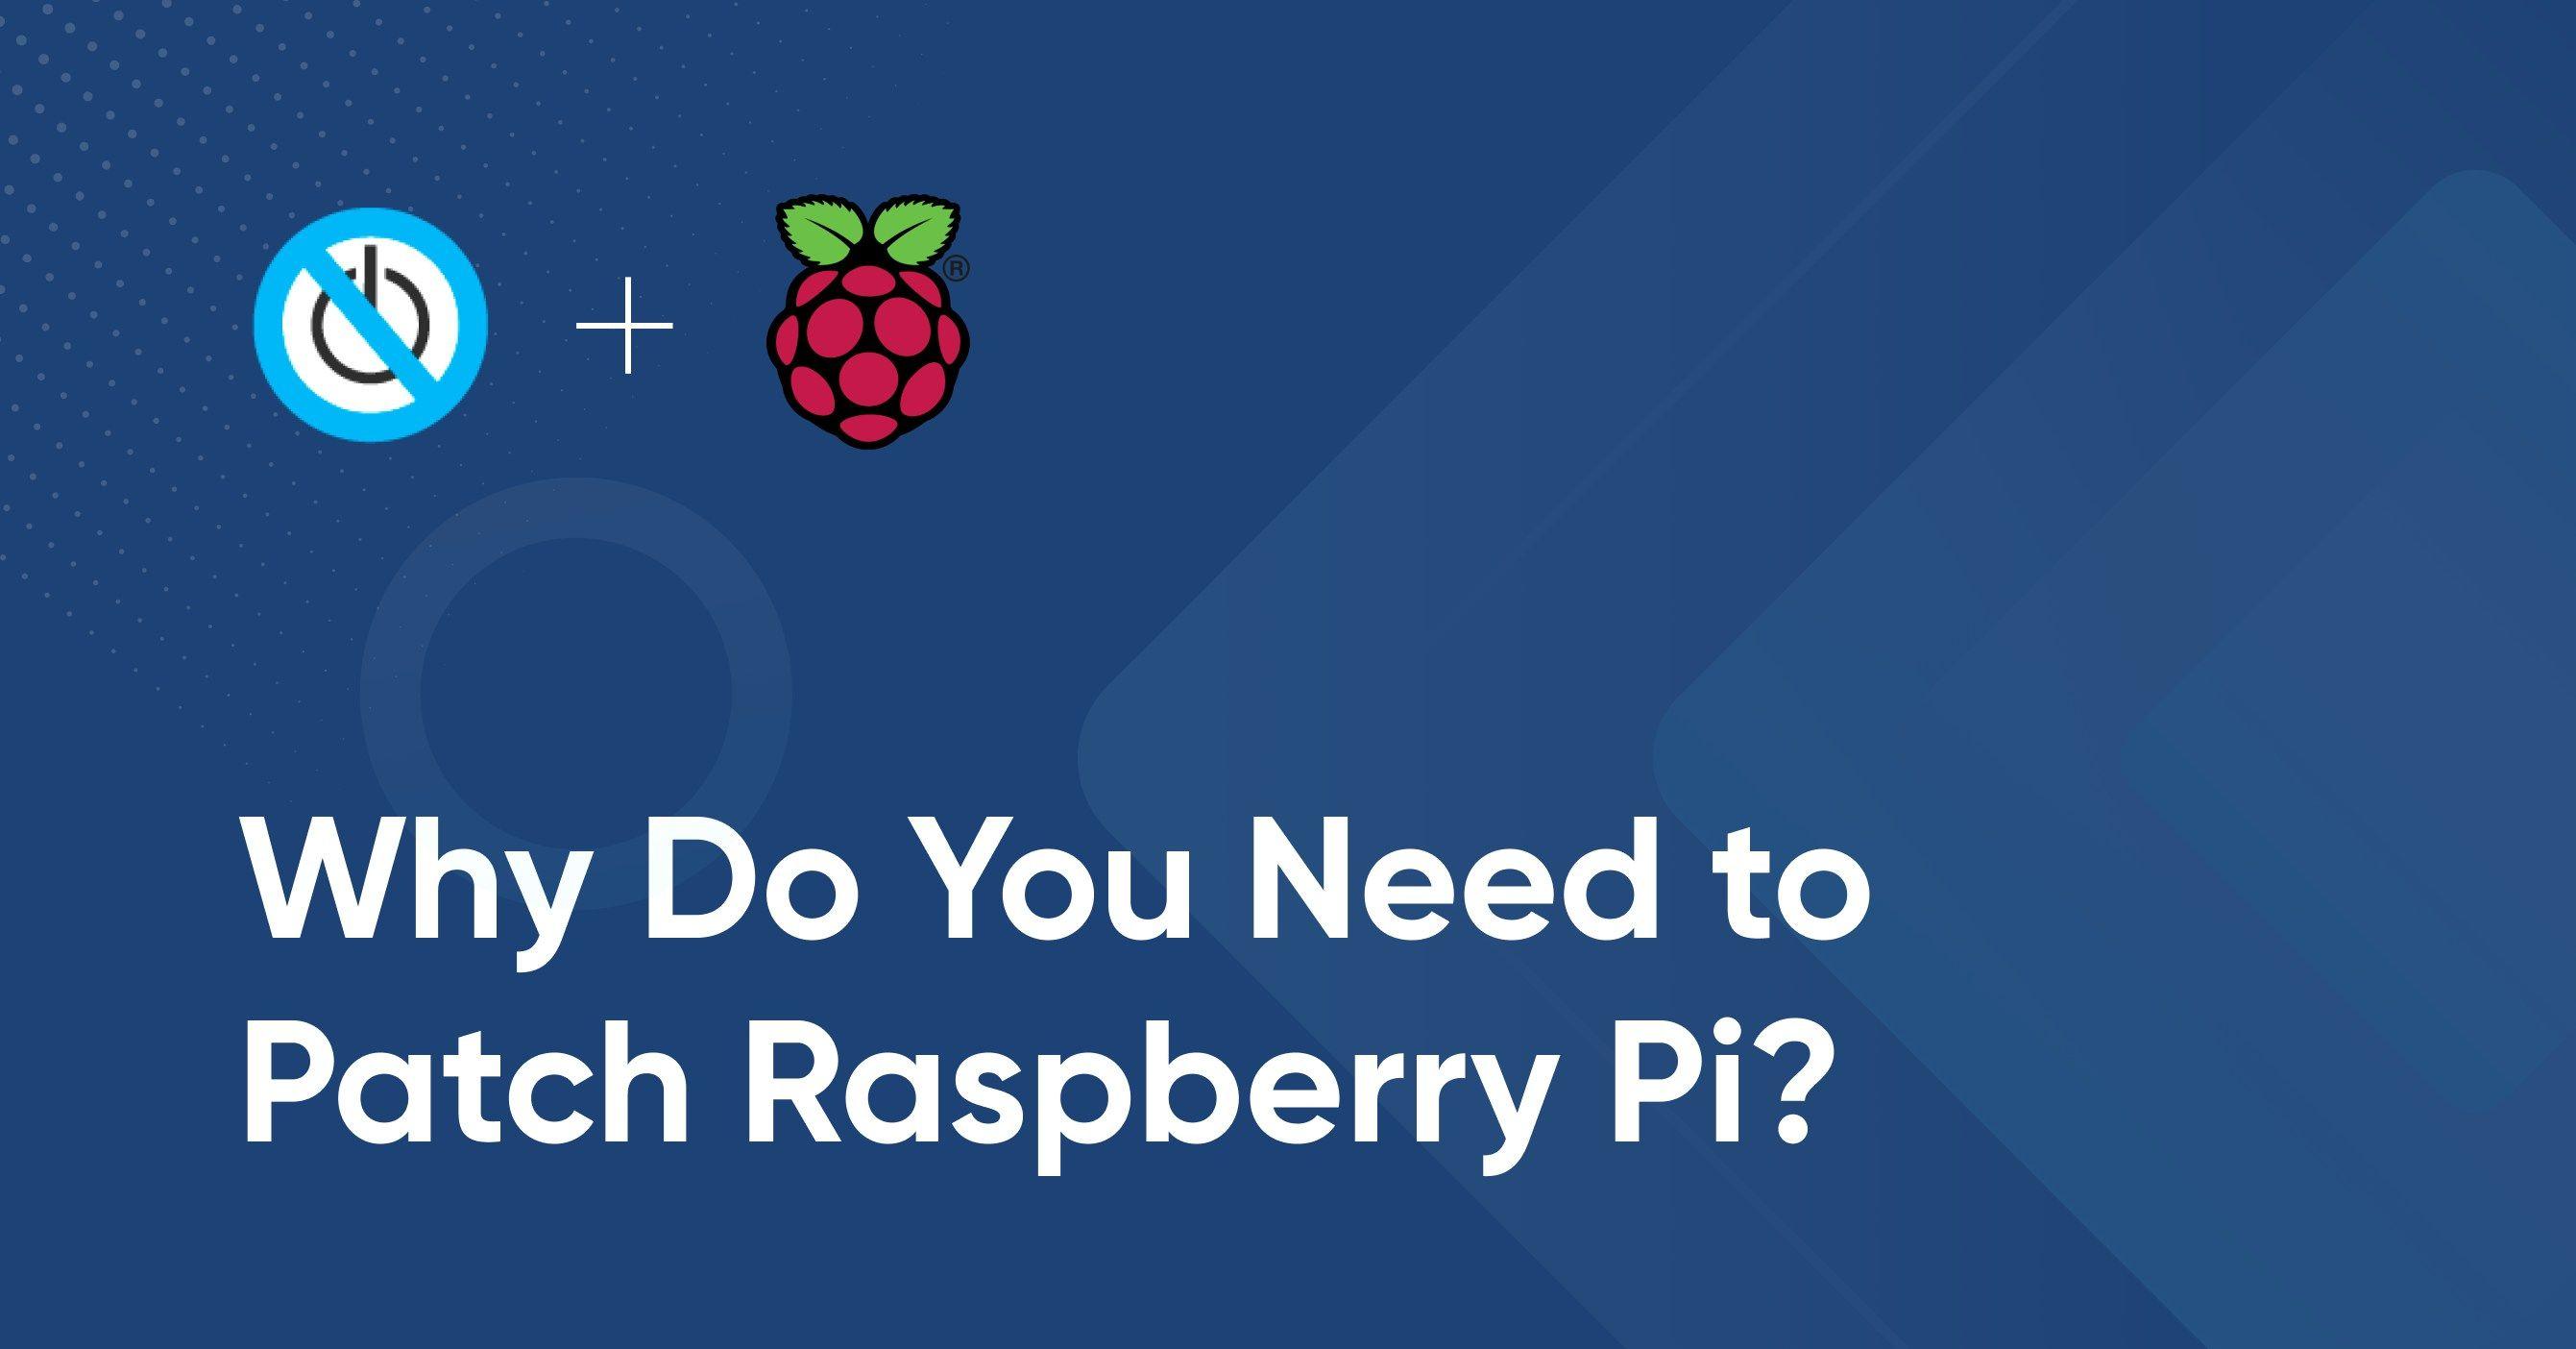 /why-do-you-need-to-patch-raspberry-pi-oo2q33fl feature image